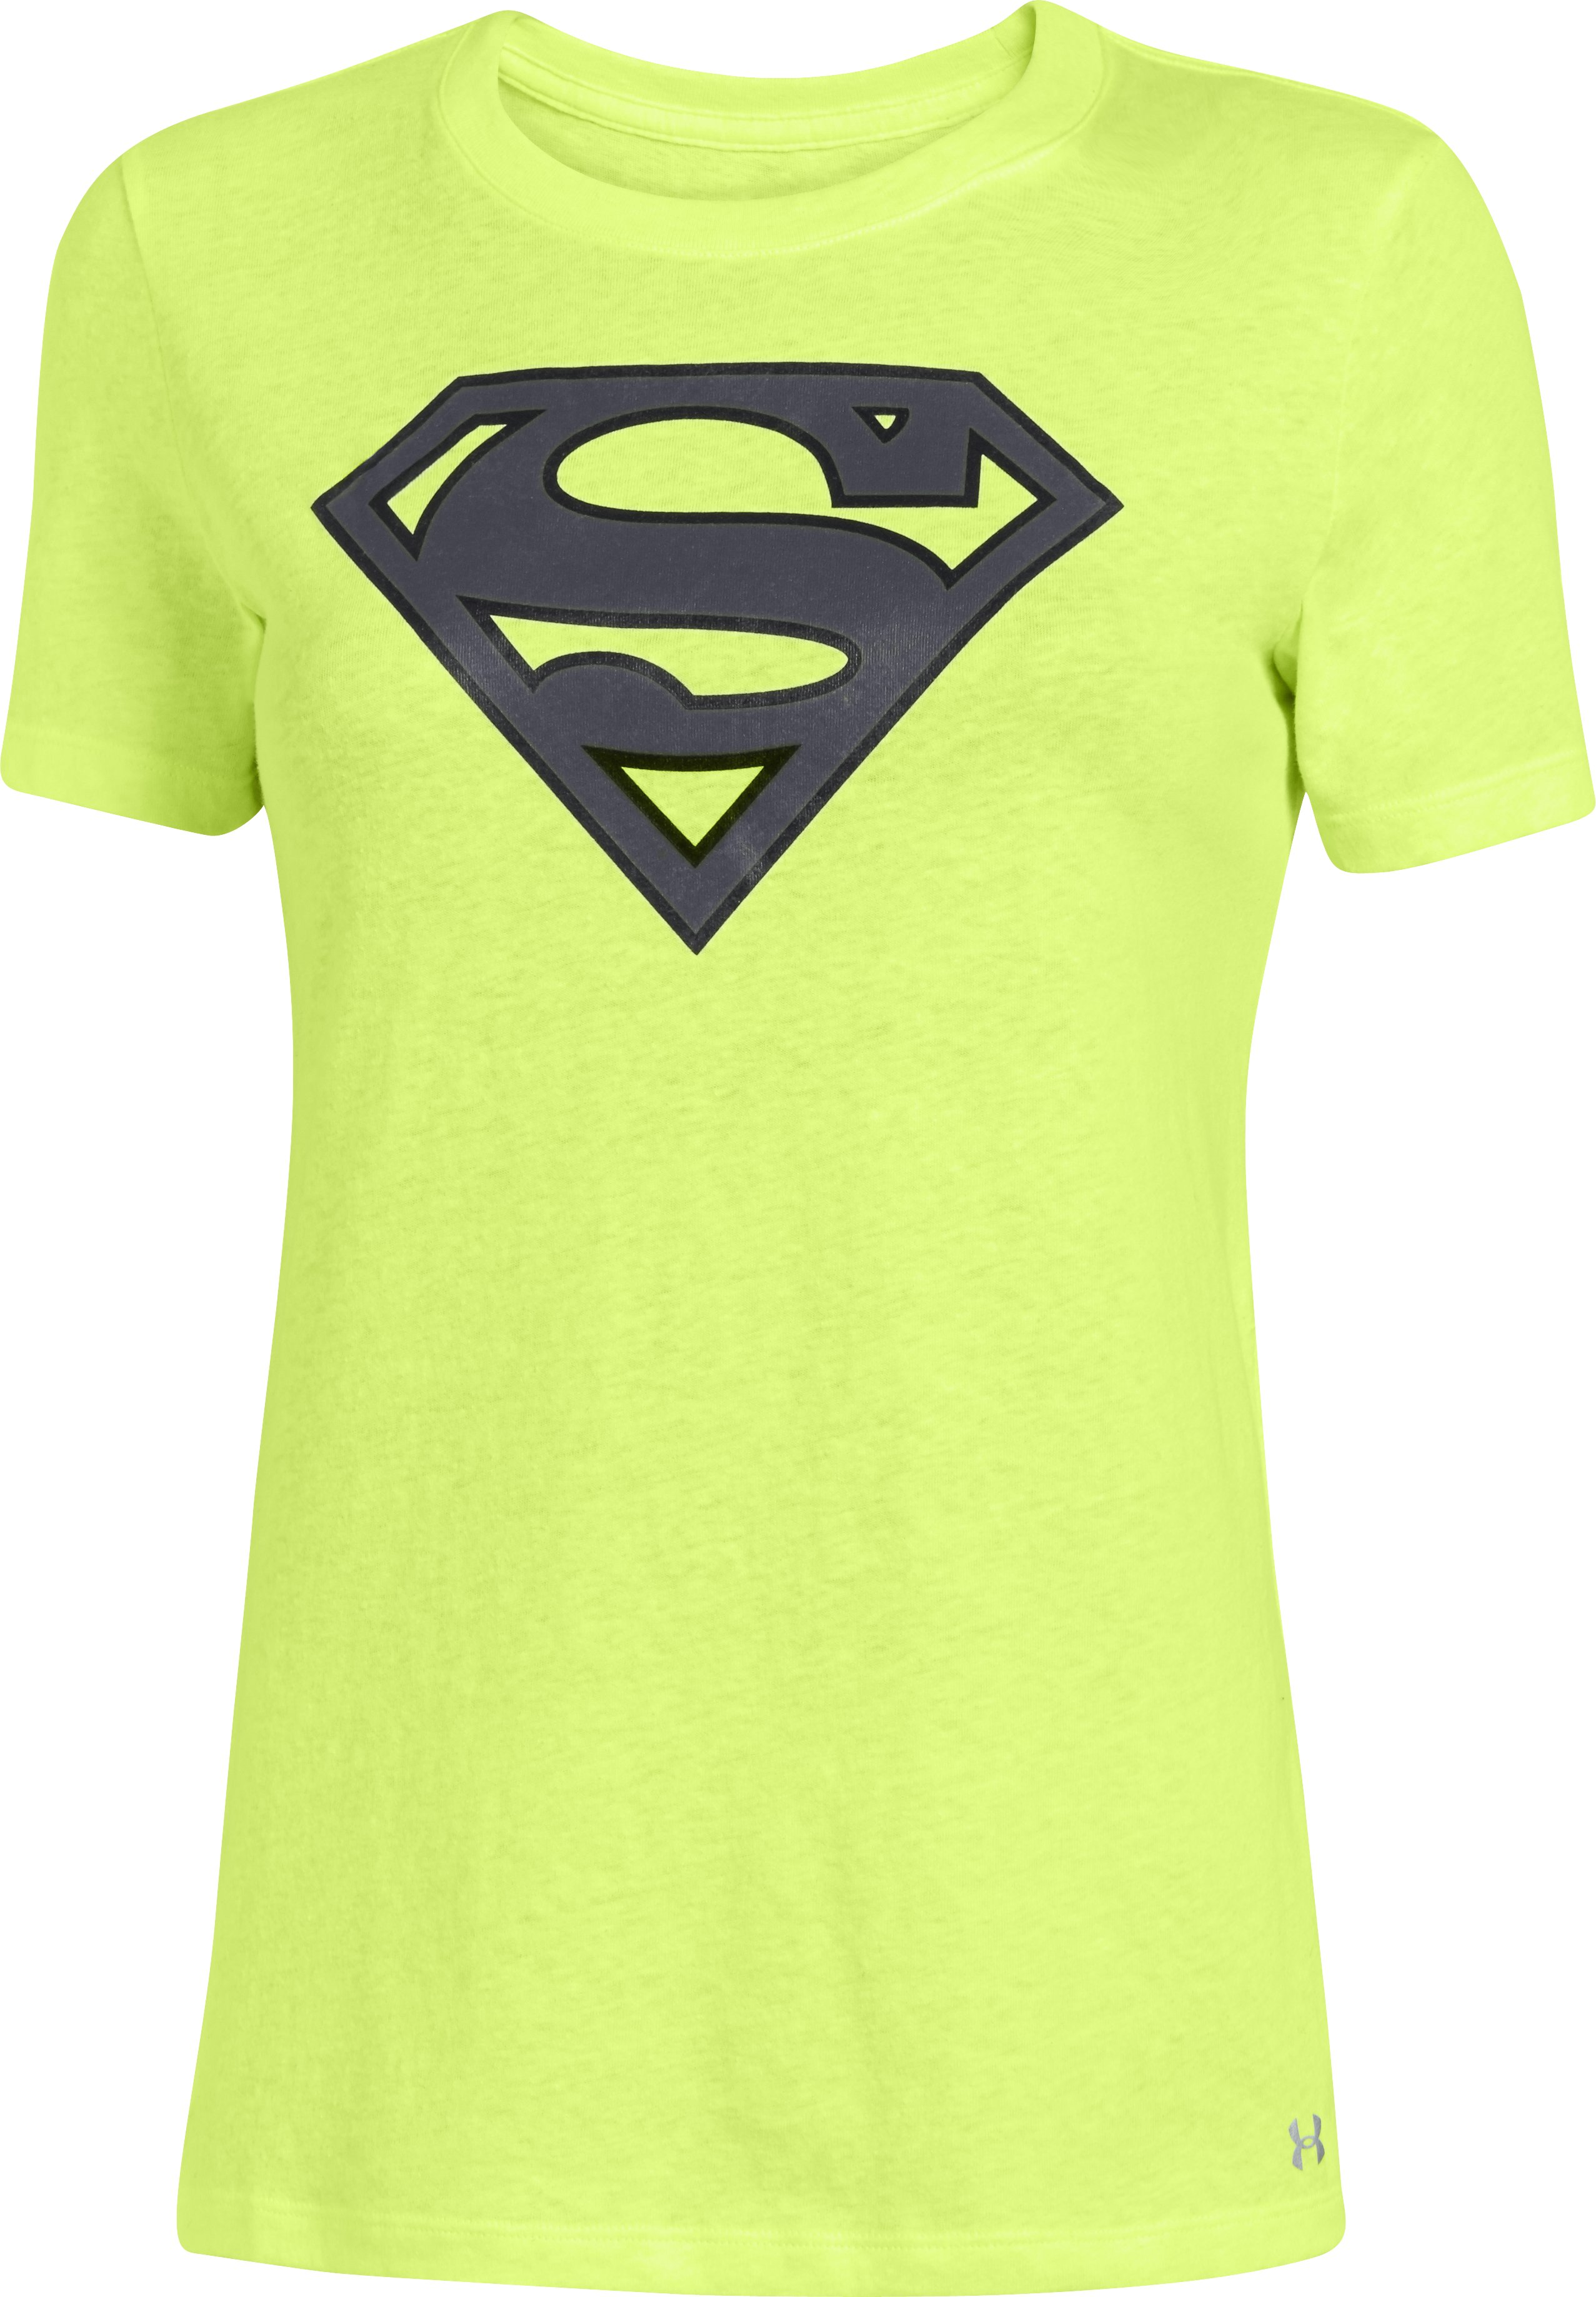 Women's Under Armour® Alter Ego Supergirl T-Shirt, X-Ray,